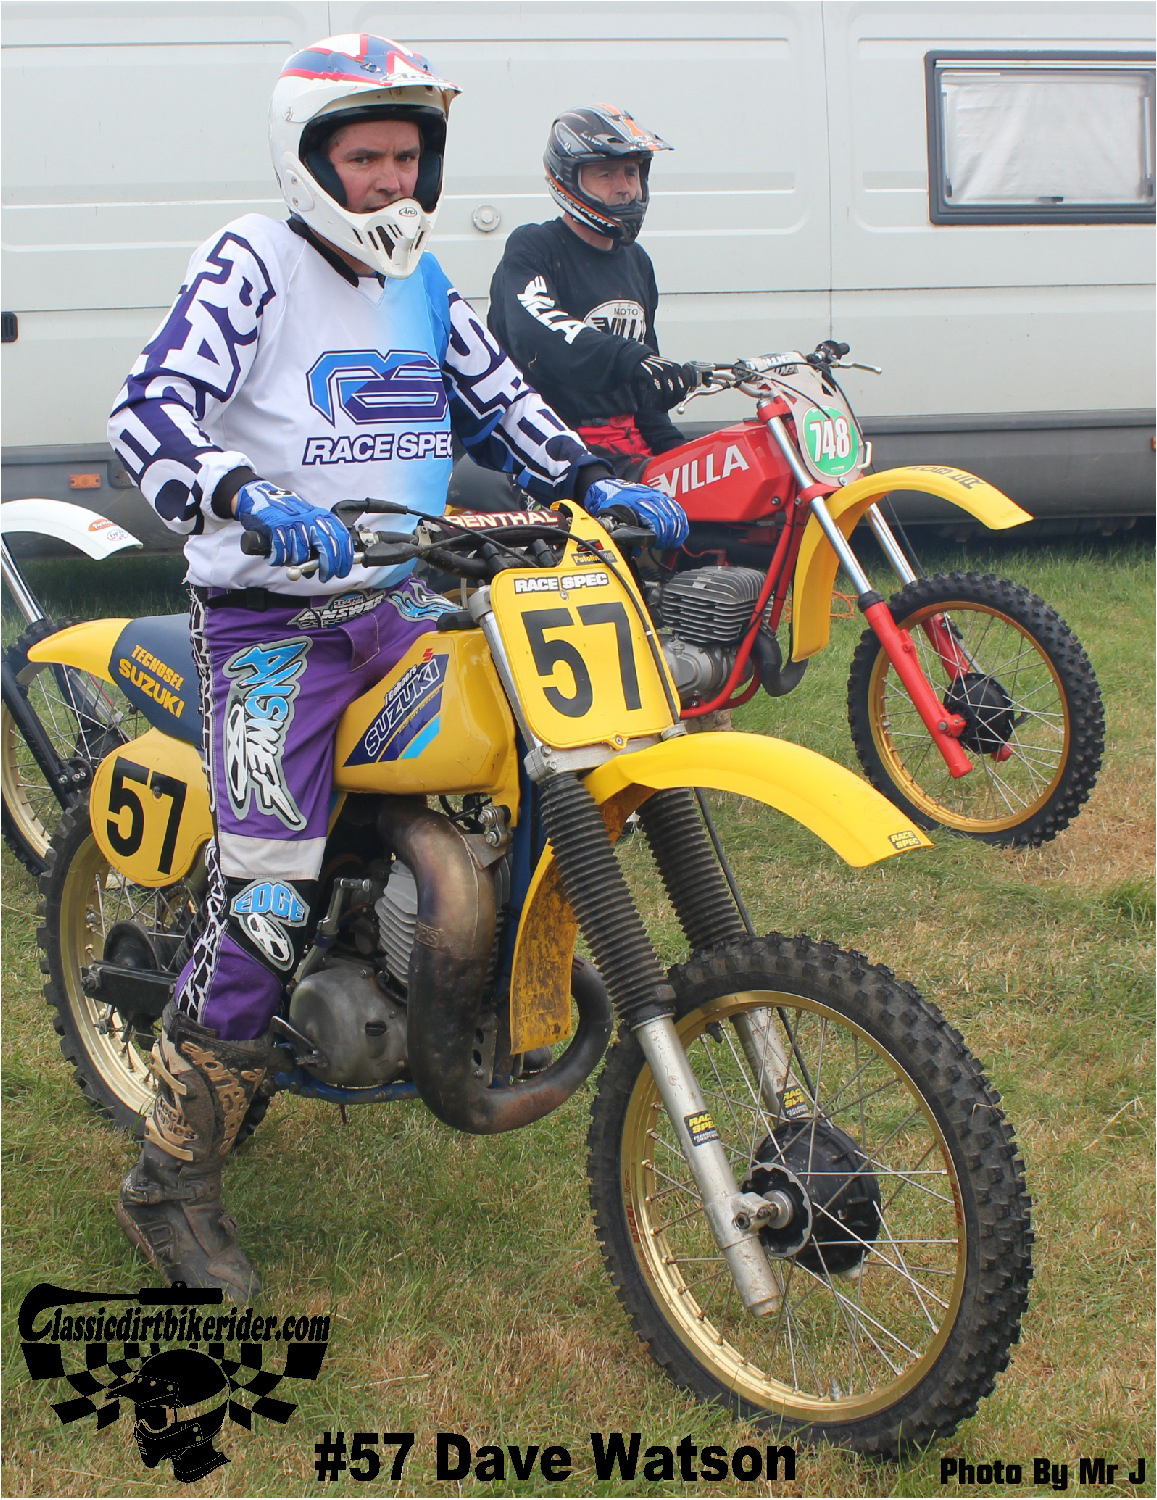 king of the castle 2015 photos Farleigh Castle twinshock motocross classicdirtbikerider.com 9